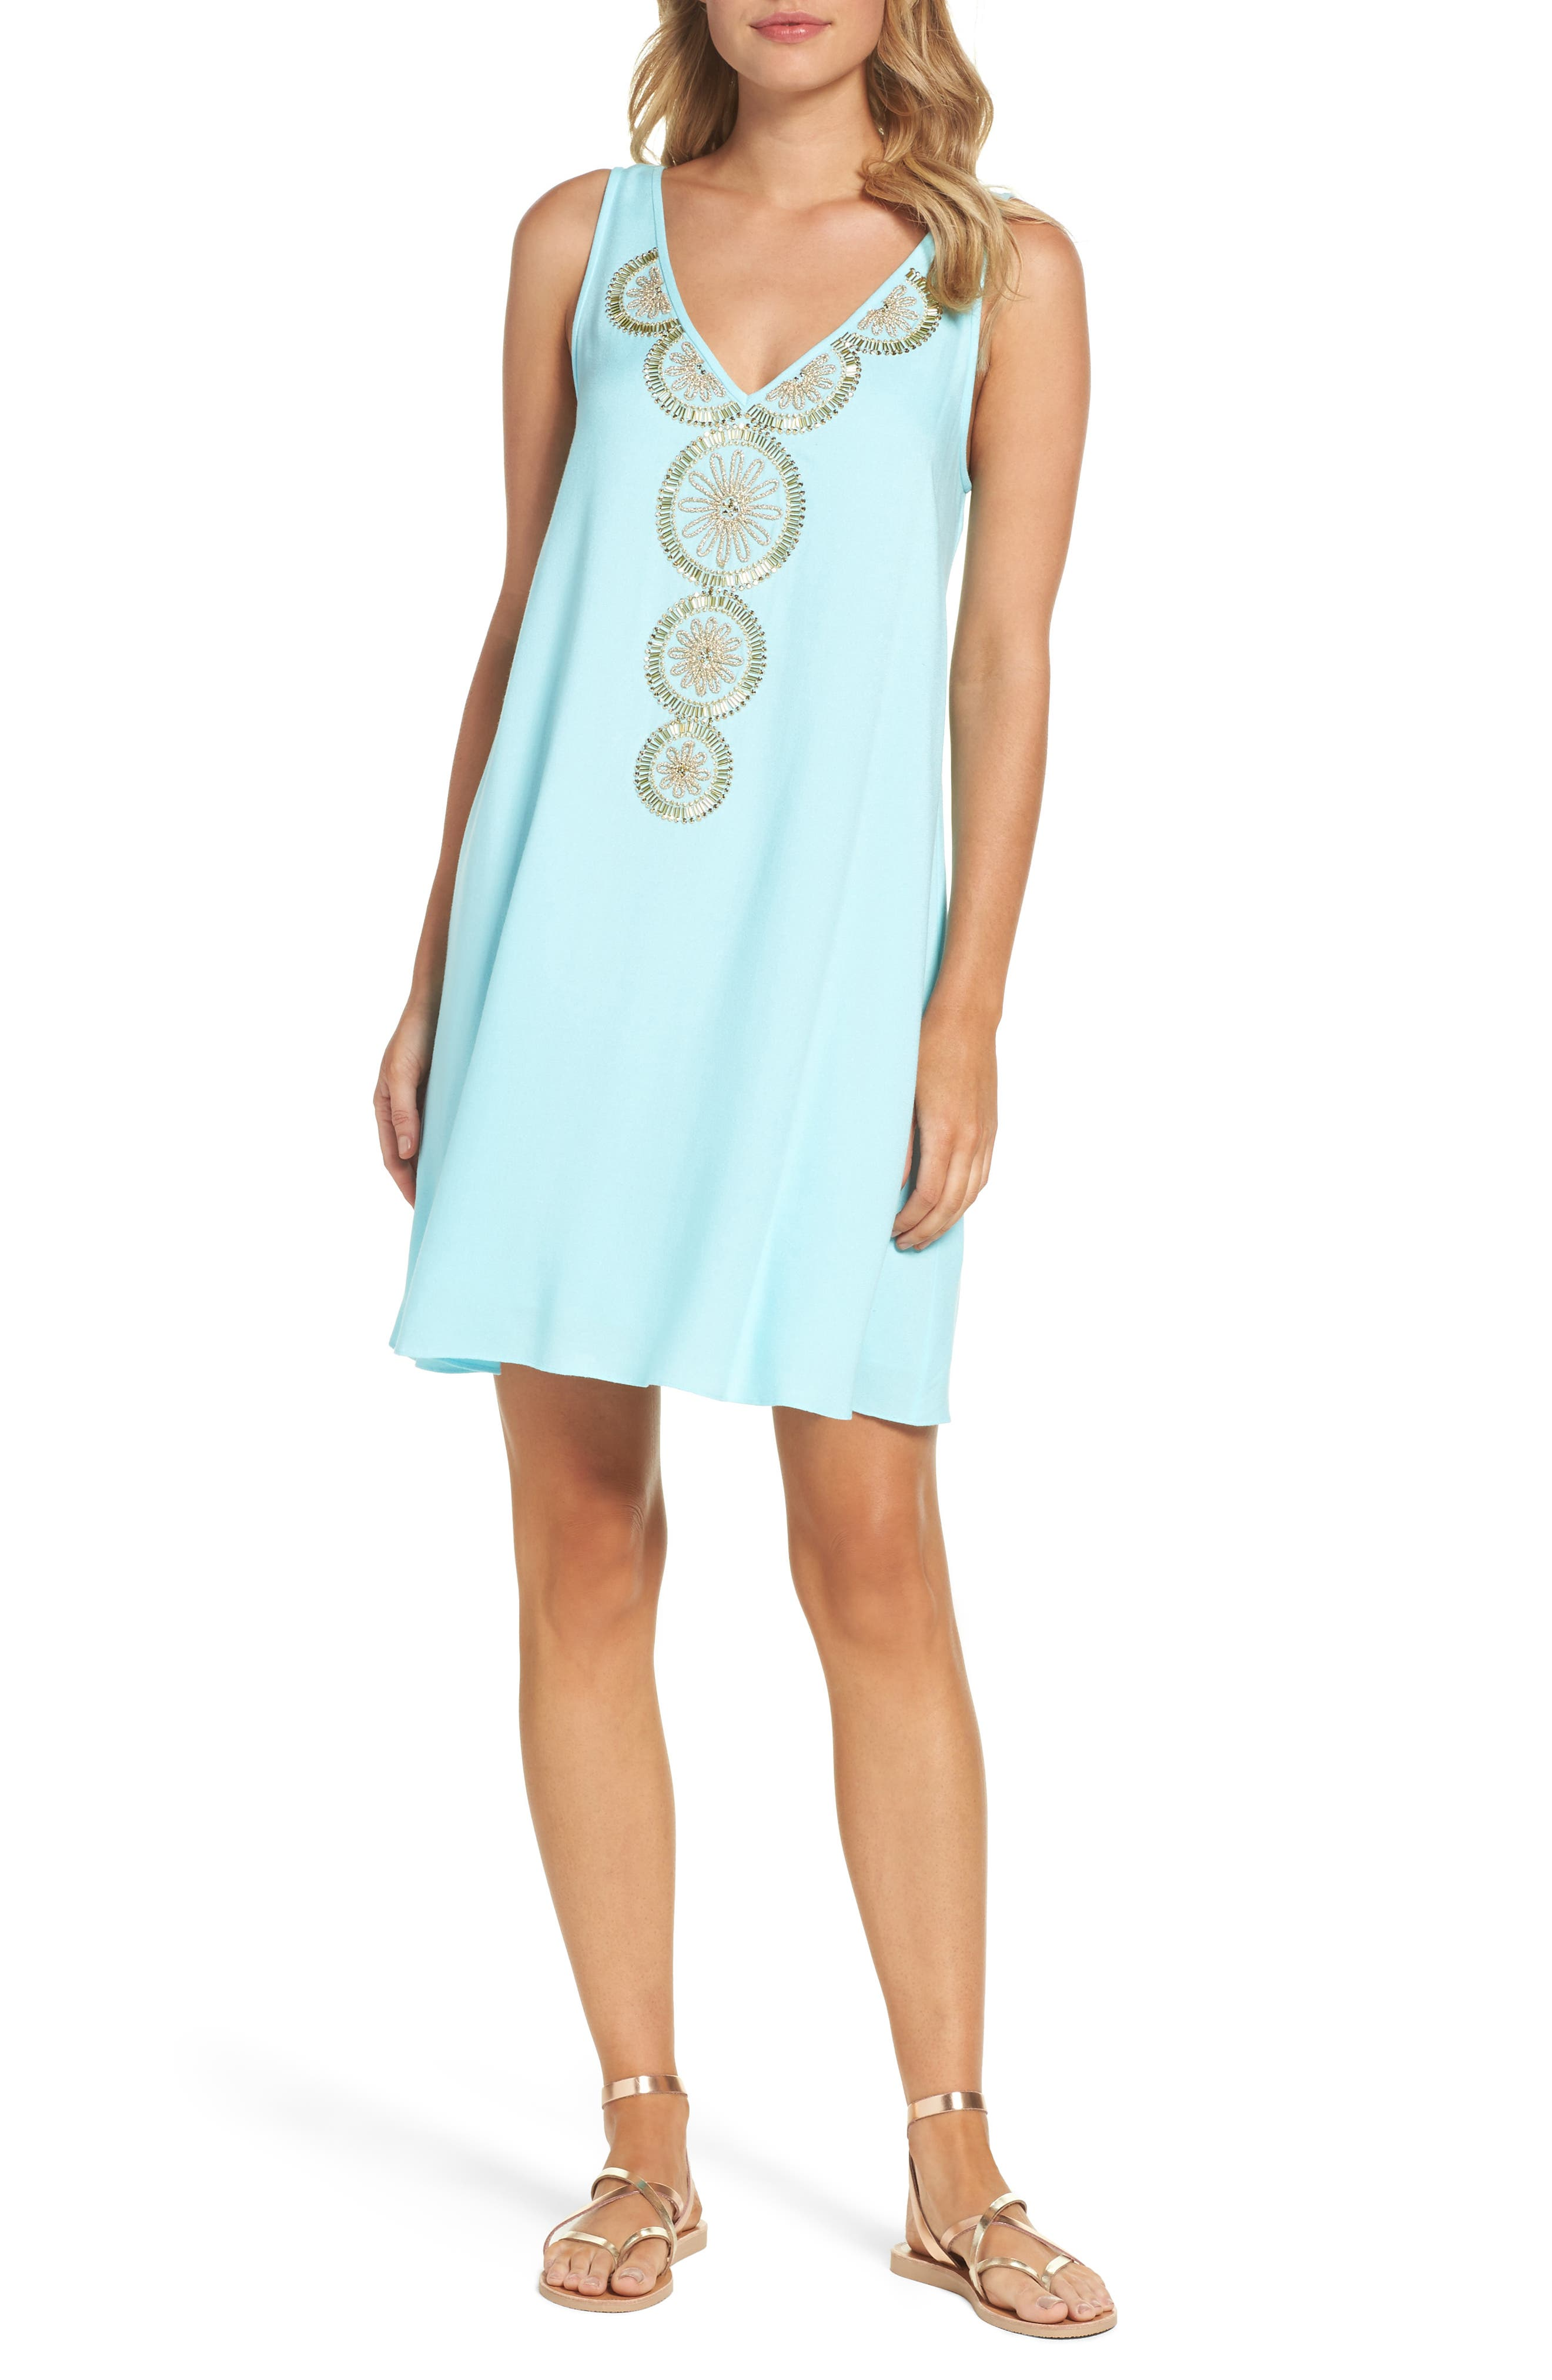 Alternate Image 1 Selected - Lilly Pulitzer® Fia Swing Dress